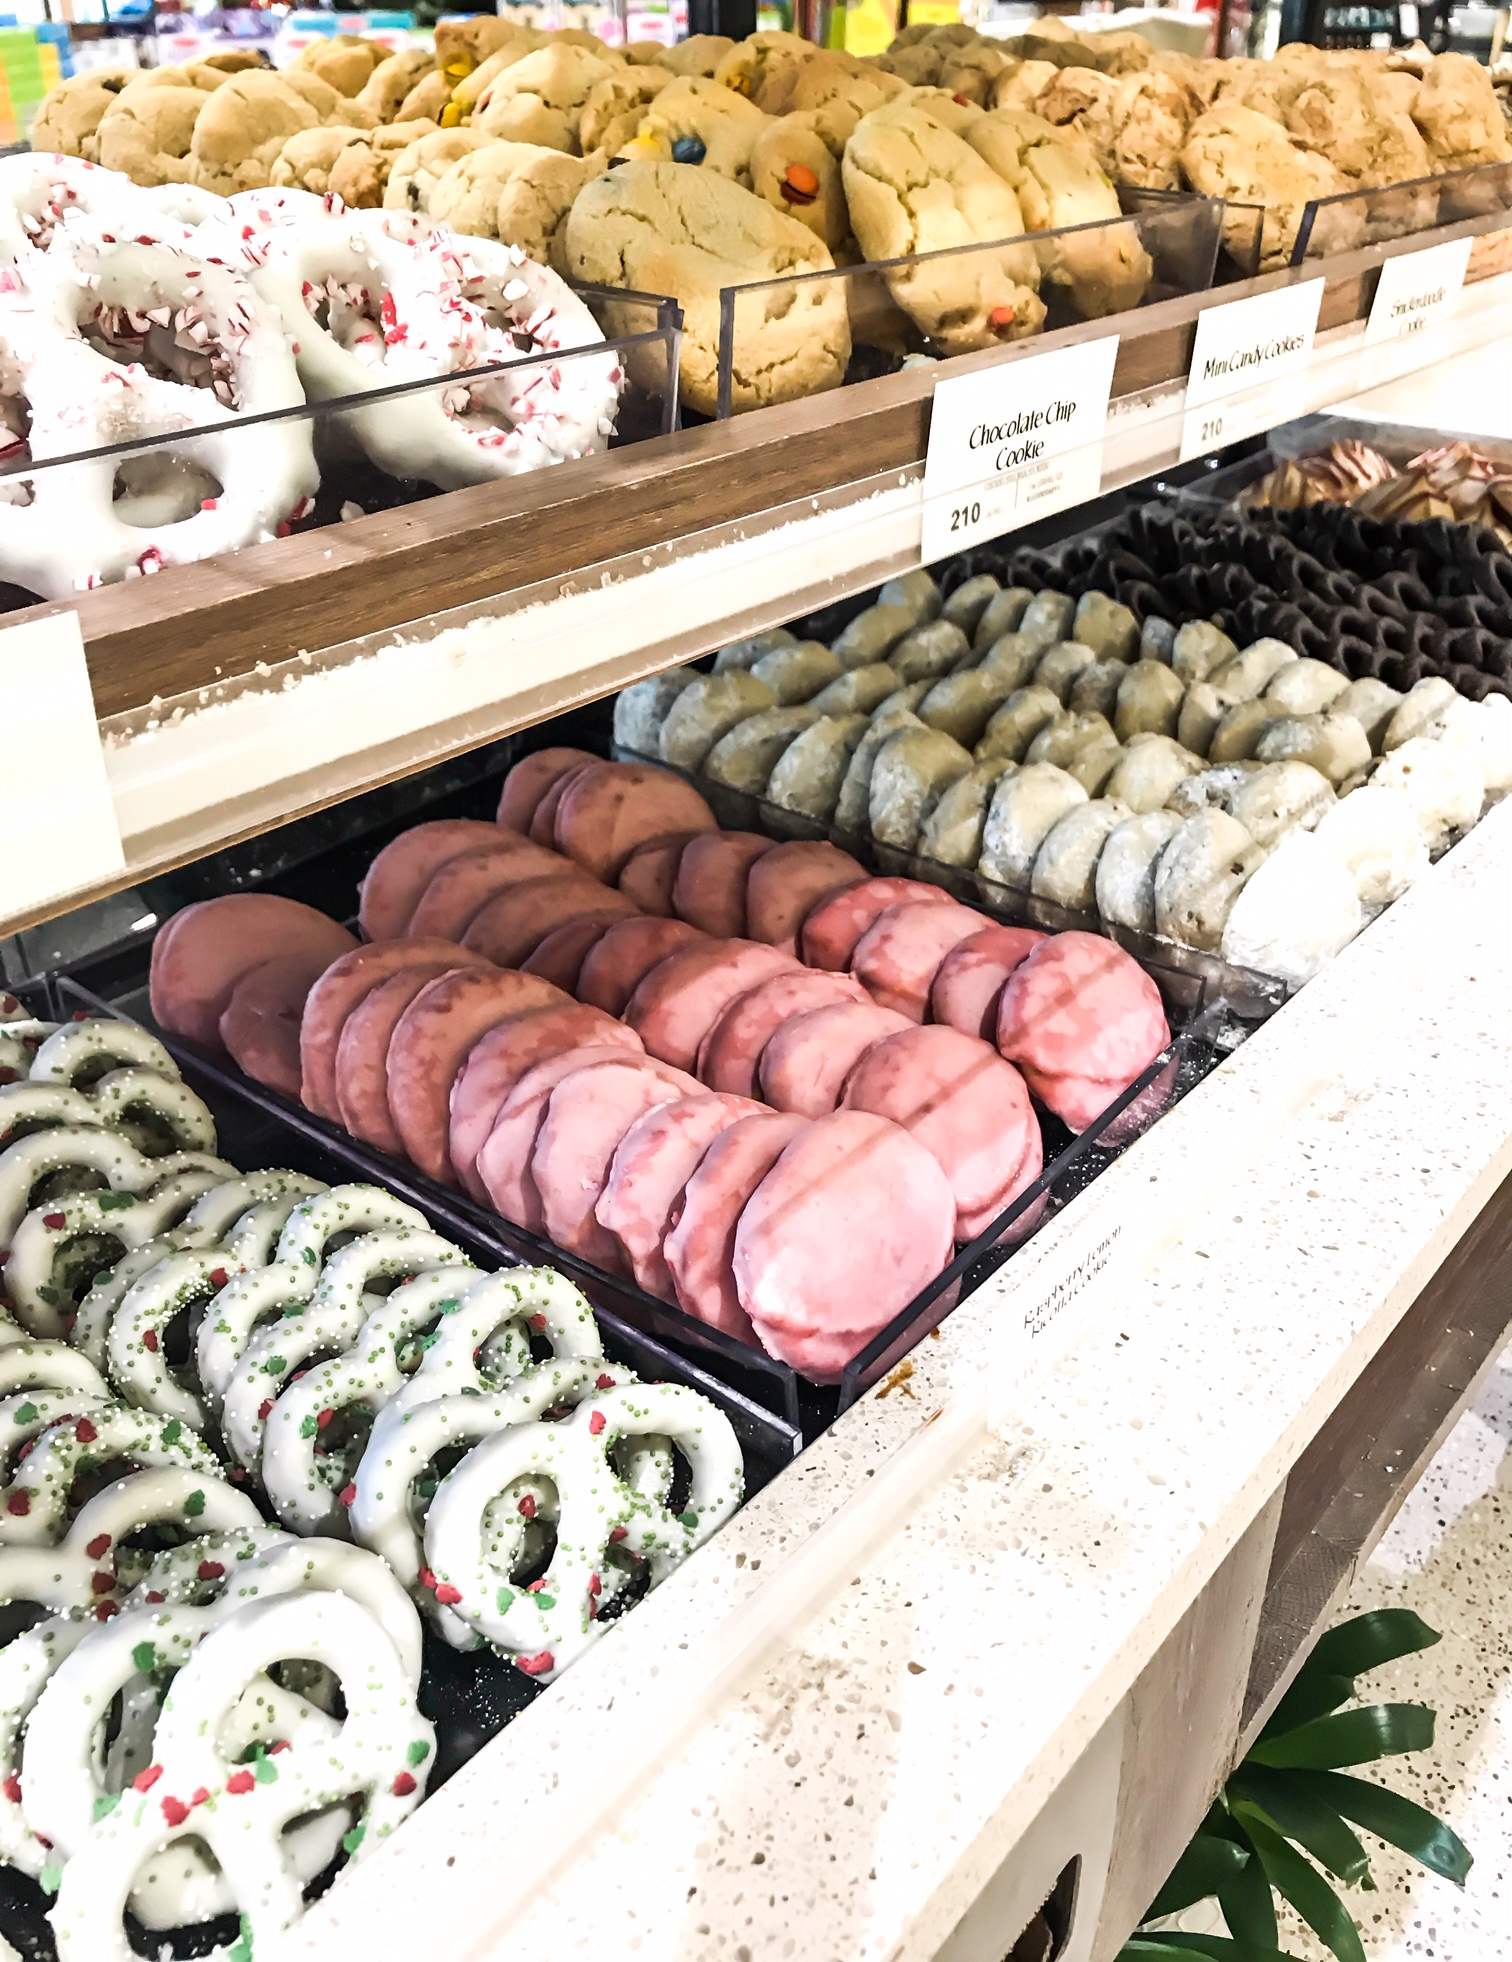 Cookie Display at Whole Foods Market. Holiday Cookie Tray. How To Have A Low Key Fancy New Year's Eve At Home With Your Family. New Year's Eve ideas for kids. How to celebrate the new year at home. New Year's Eve With Kids. Shopping at Whole Foods Market For The Holidays. #sponsored #MakesMeWhole #LowKeyNYE #Whole #Foods